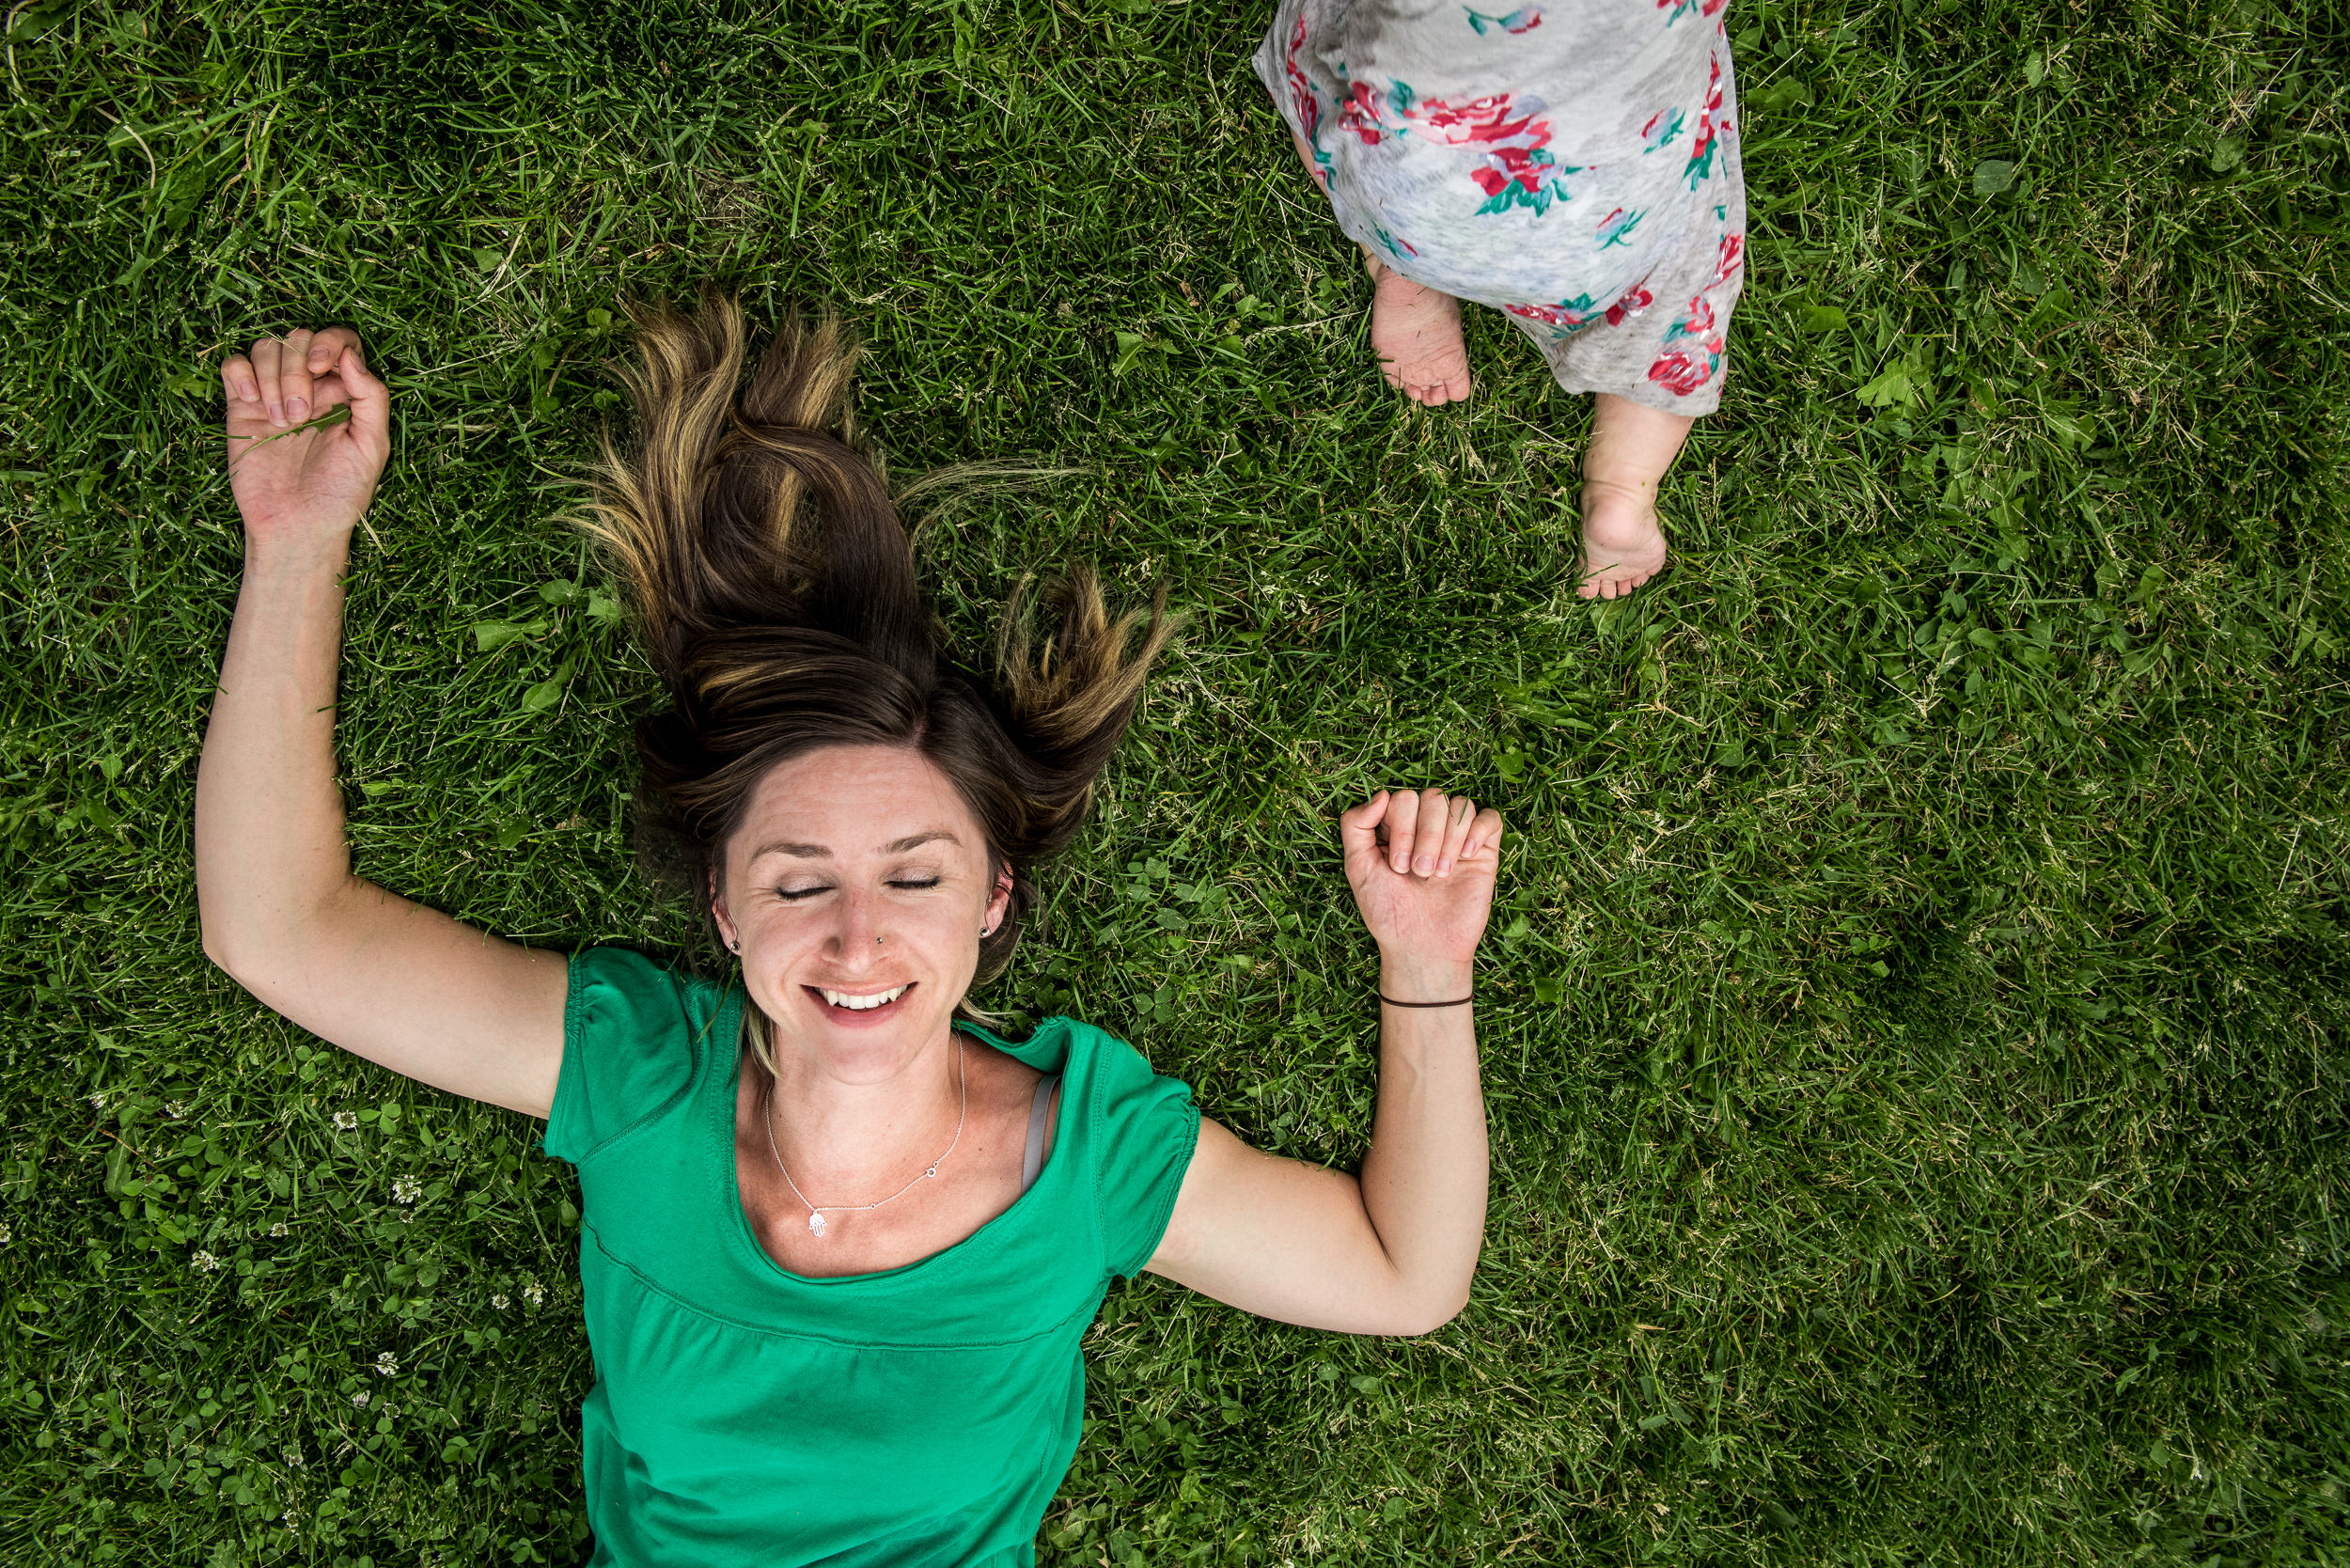 Blog - The Pen & Camera - Gratitude Journal, Inspirational, Friendship, Motherhood, Writing, Denver, Colorado -  Molly Rees Photo - Documentary Childhood Photography - mom laying on grass with crawling baby by M. Menschel